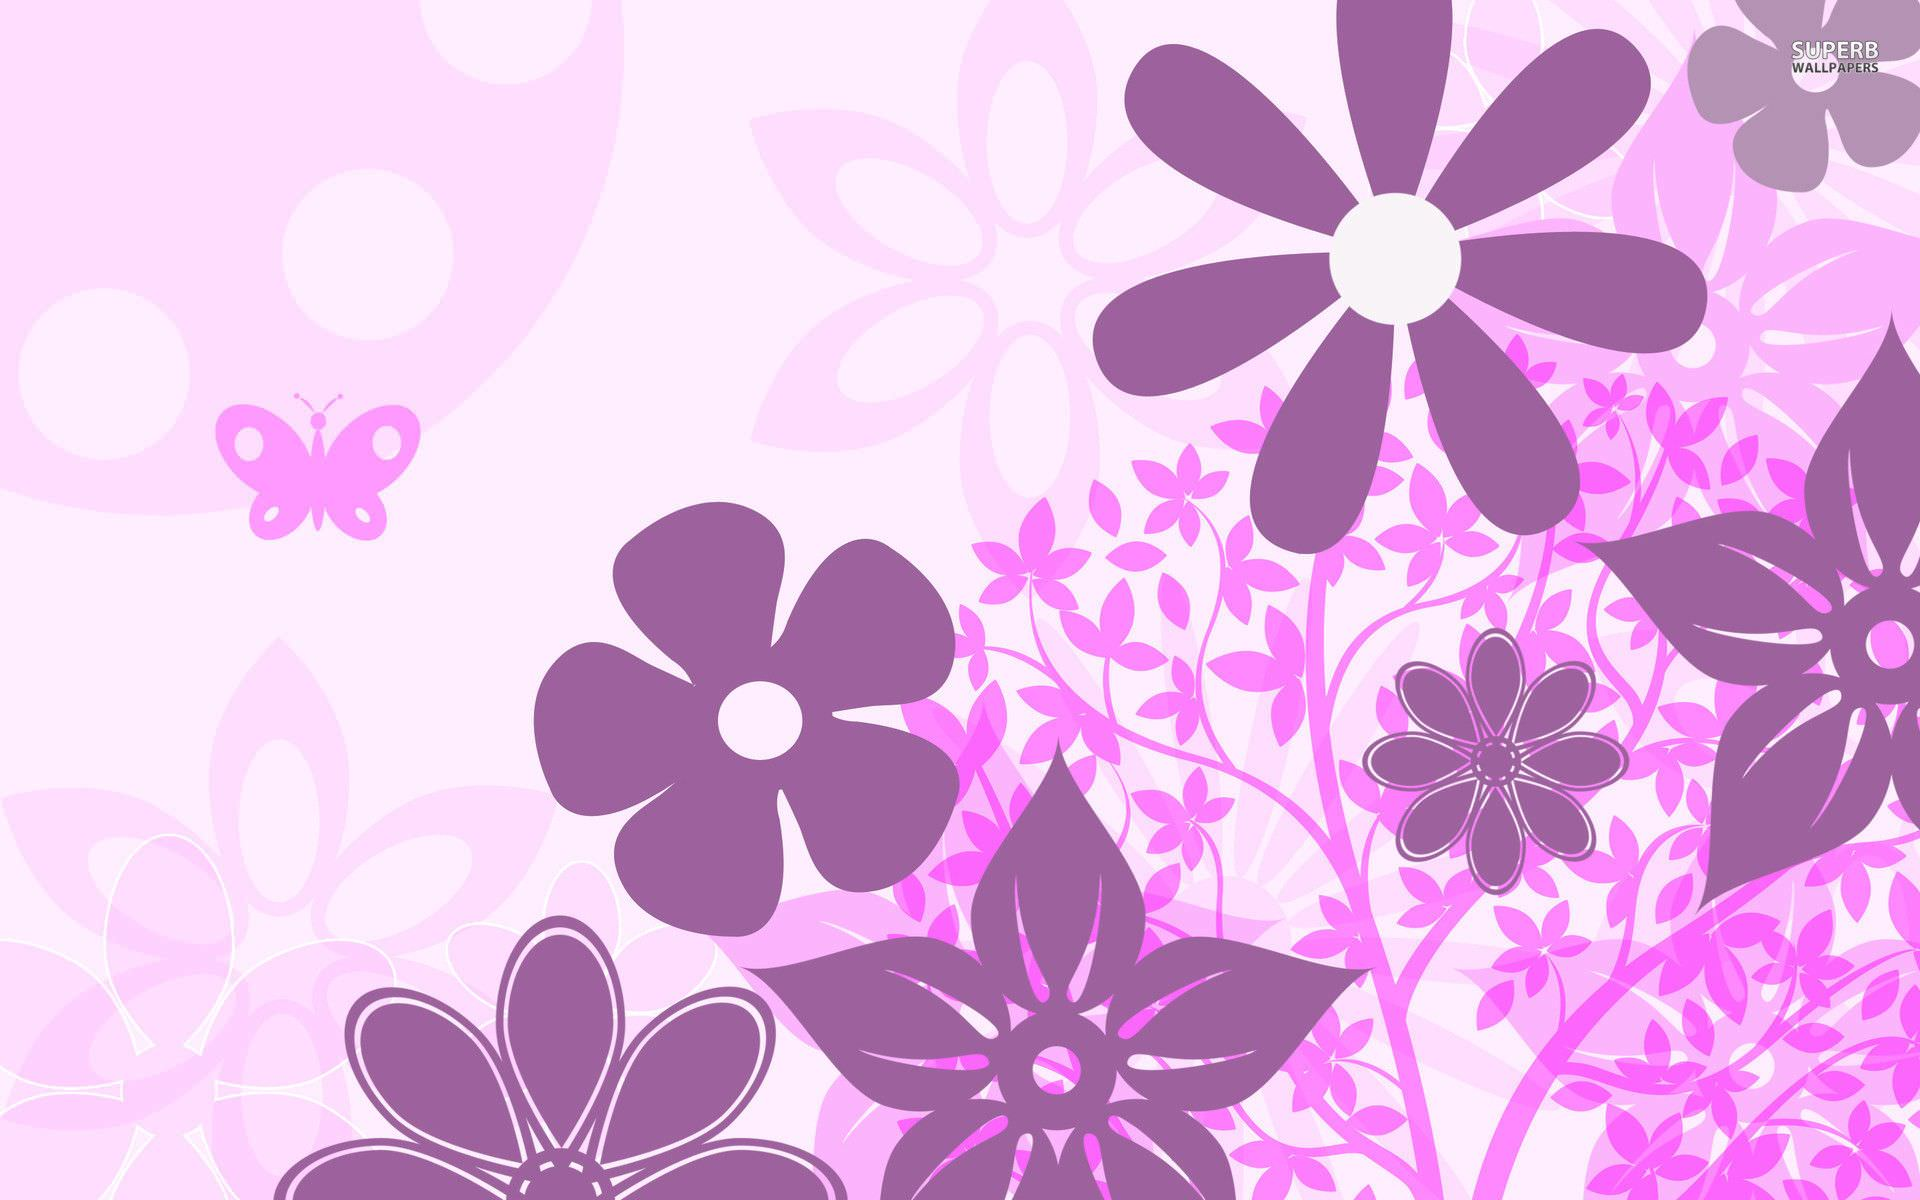 Wallpaper Hd Floral 10 Purple Floral Wallpapers Floral Patterns Freecreatives